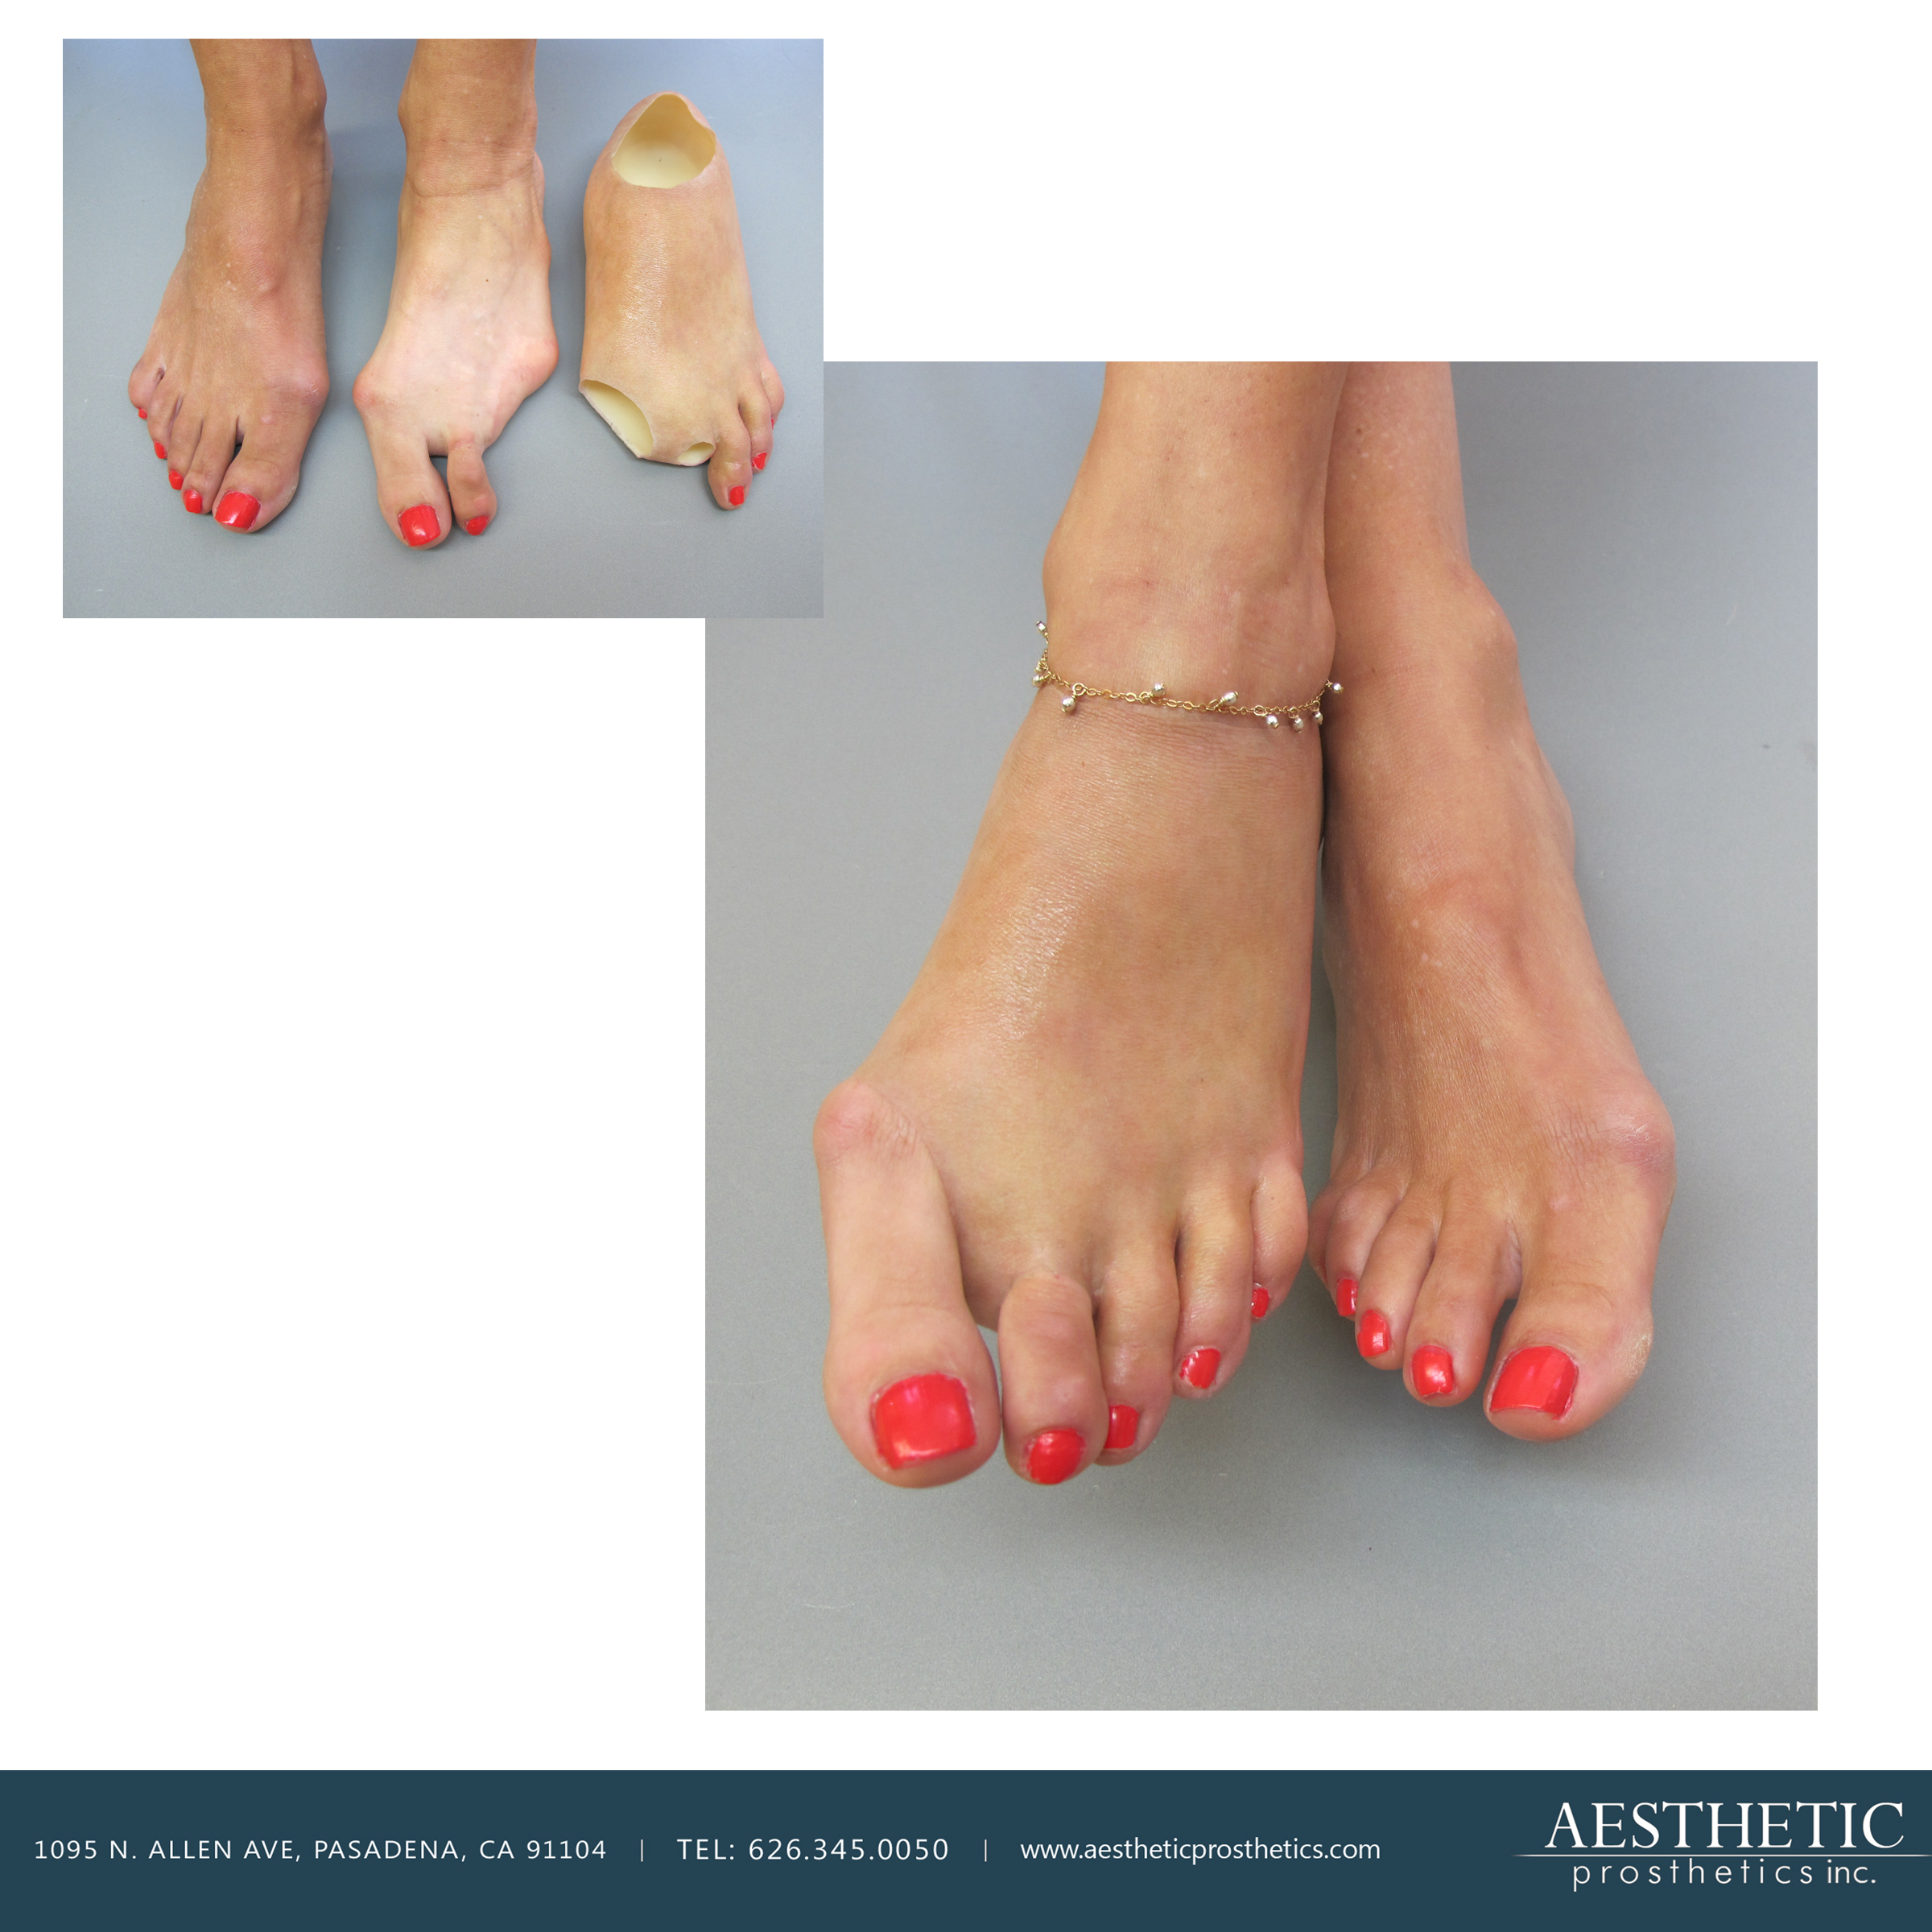 caucasian woman wears realistic silicone prosthetic, prosthesis real hyer realism partial foot realistic toes on her left foot amputation made in Pasadena, Los Angeles, southern califlornia by aesthetic prosthetics anaplastologist